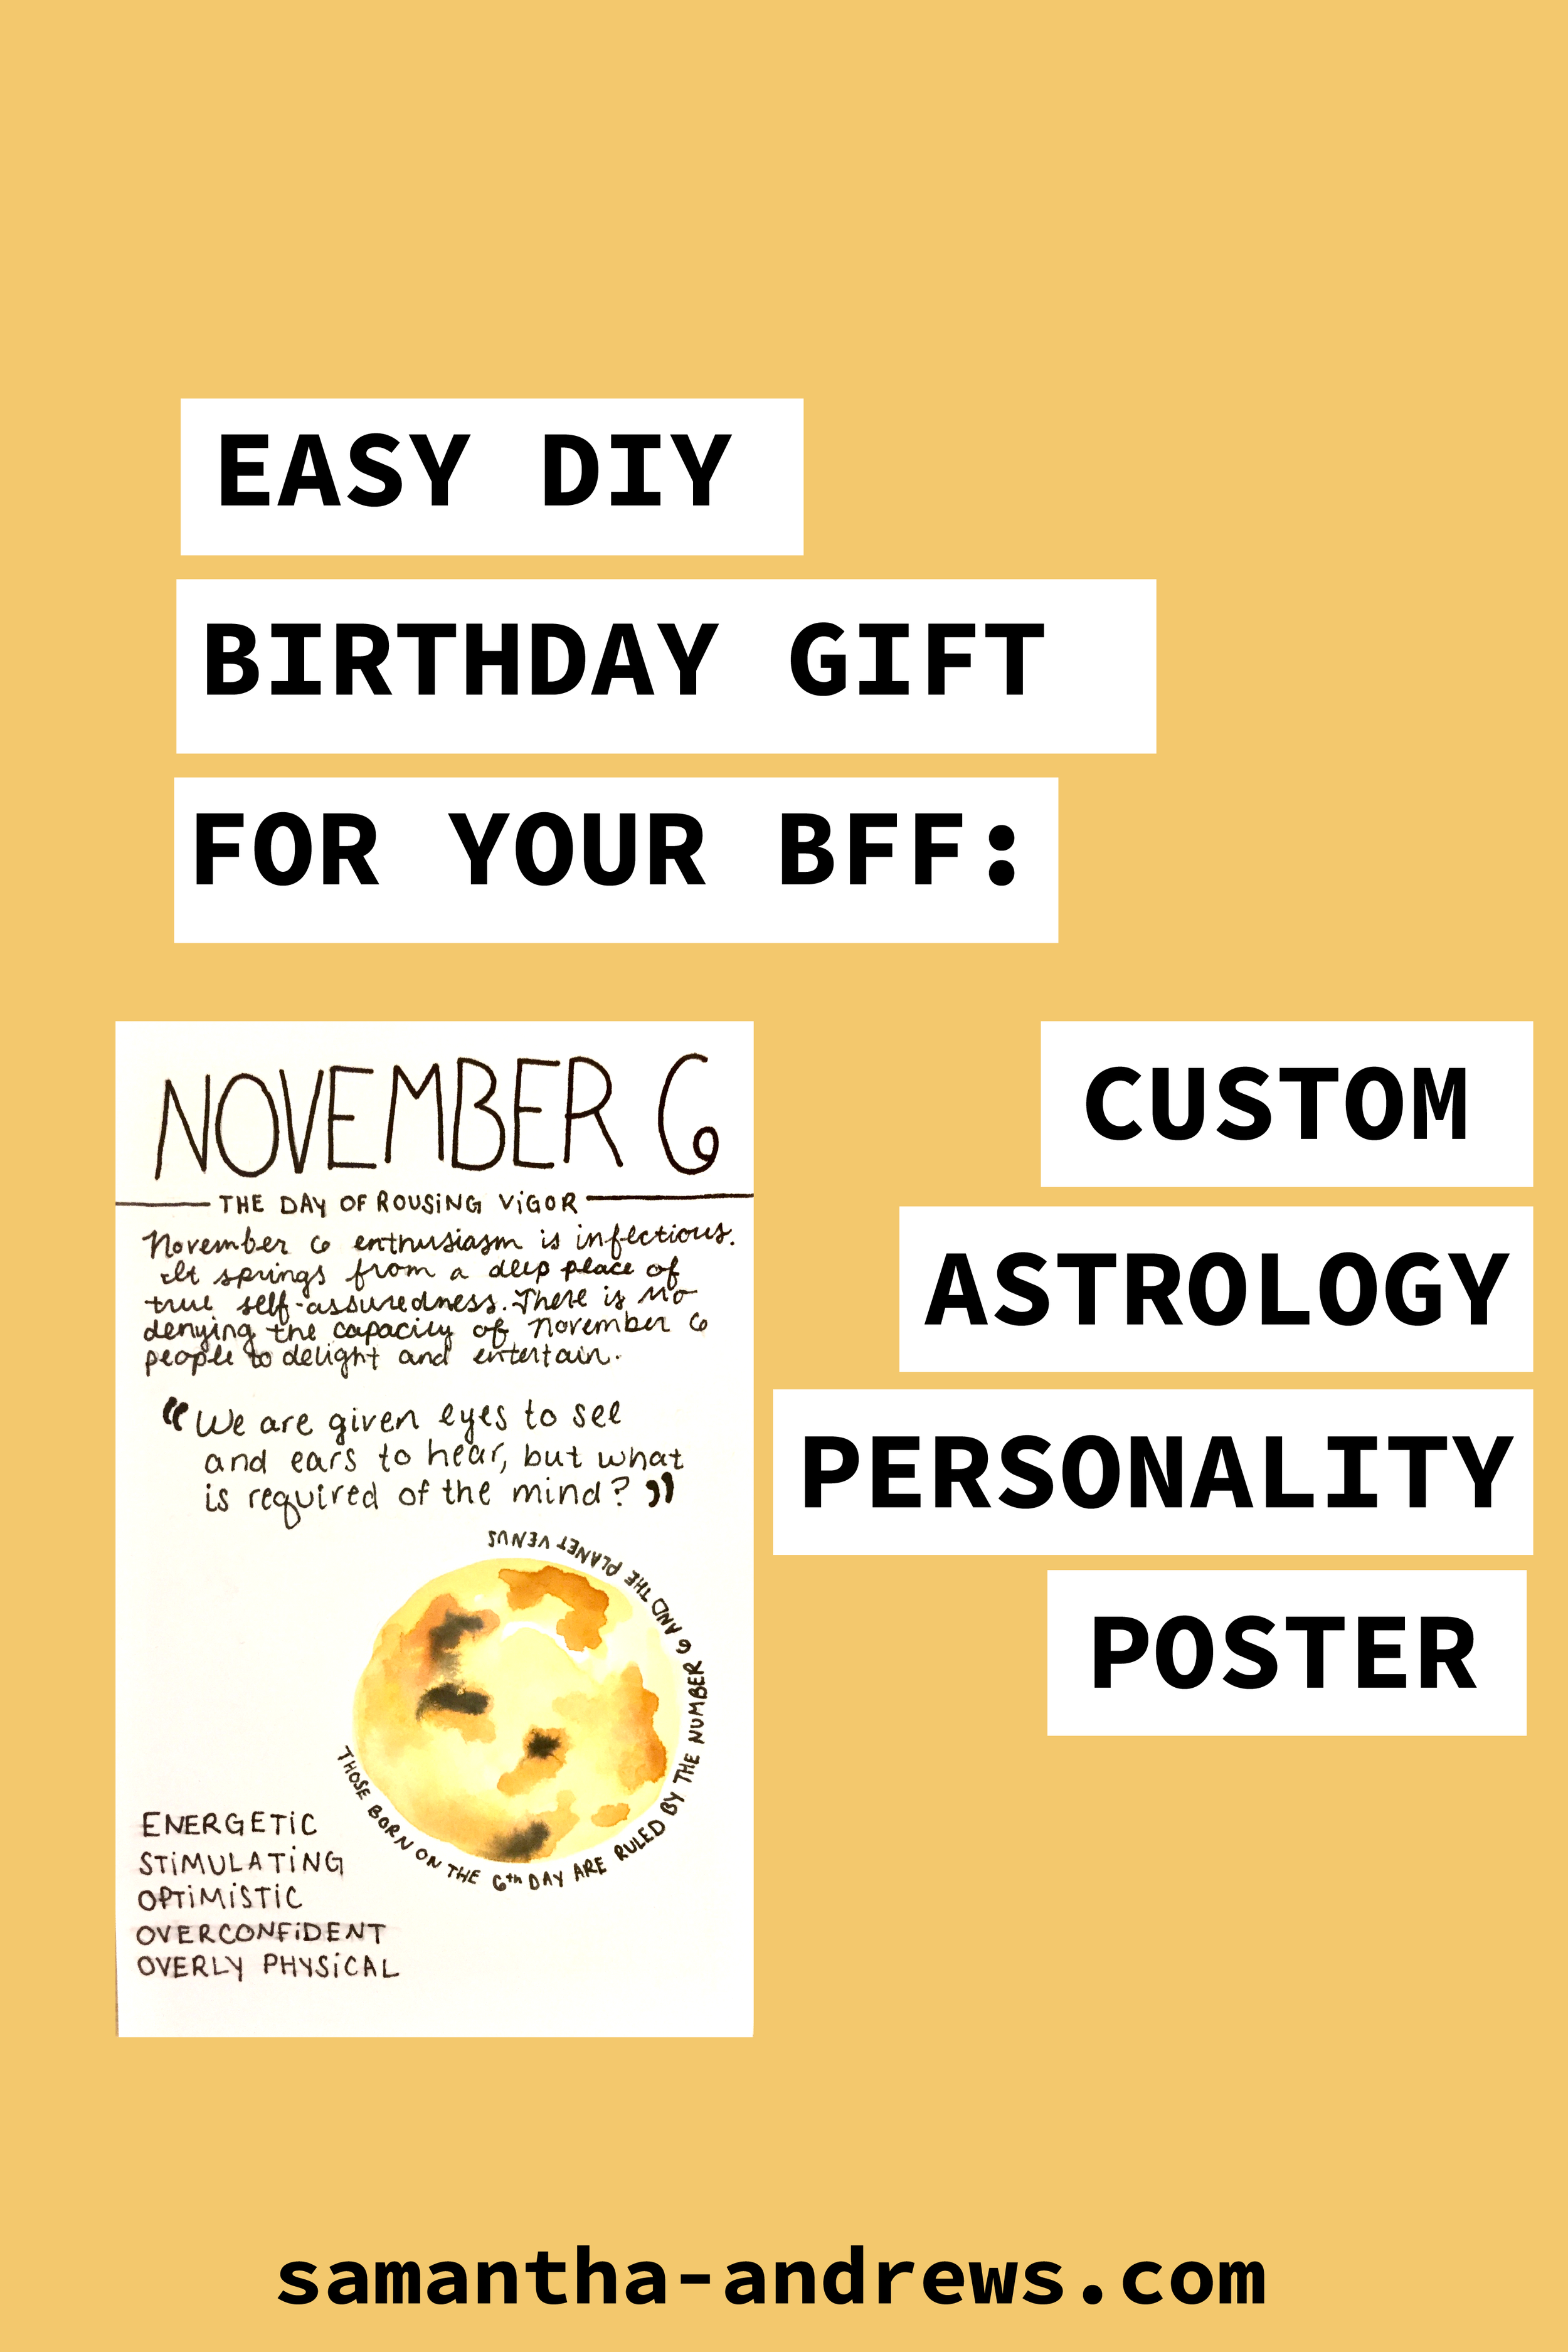 Easy DIY Birthday Gift For Best Friends - Custom Astrology Personality Poster